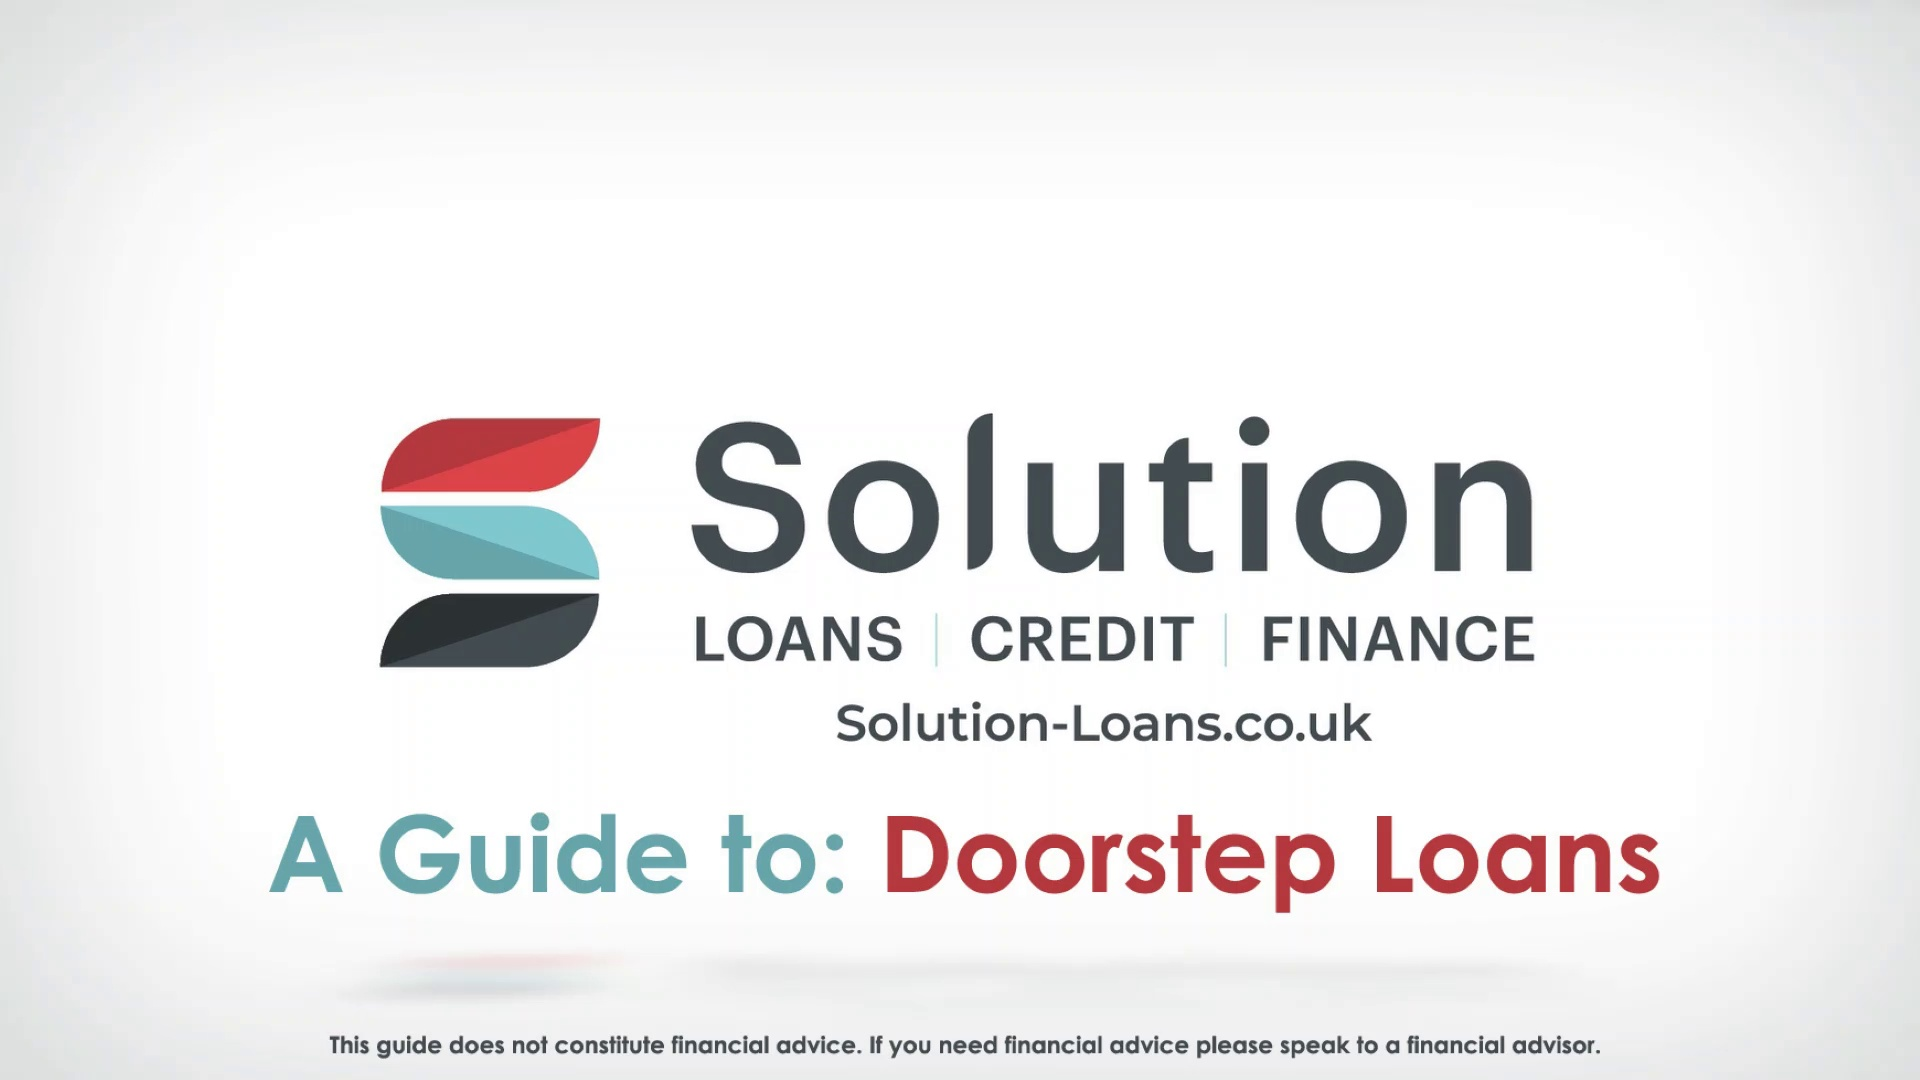 In-depth guide to Doorstep Loans and other small cash loans